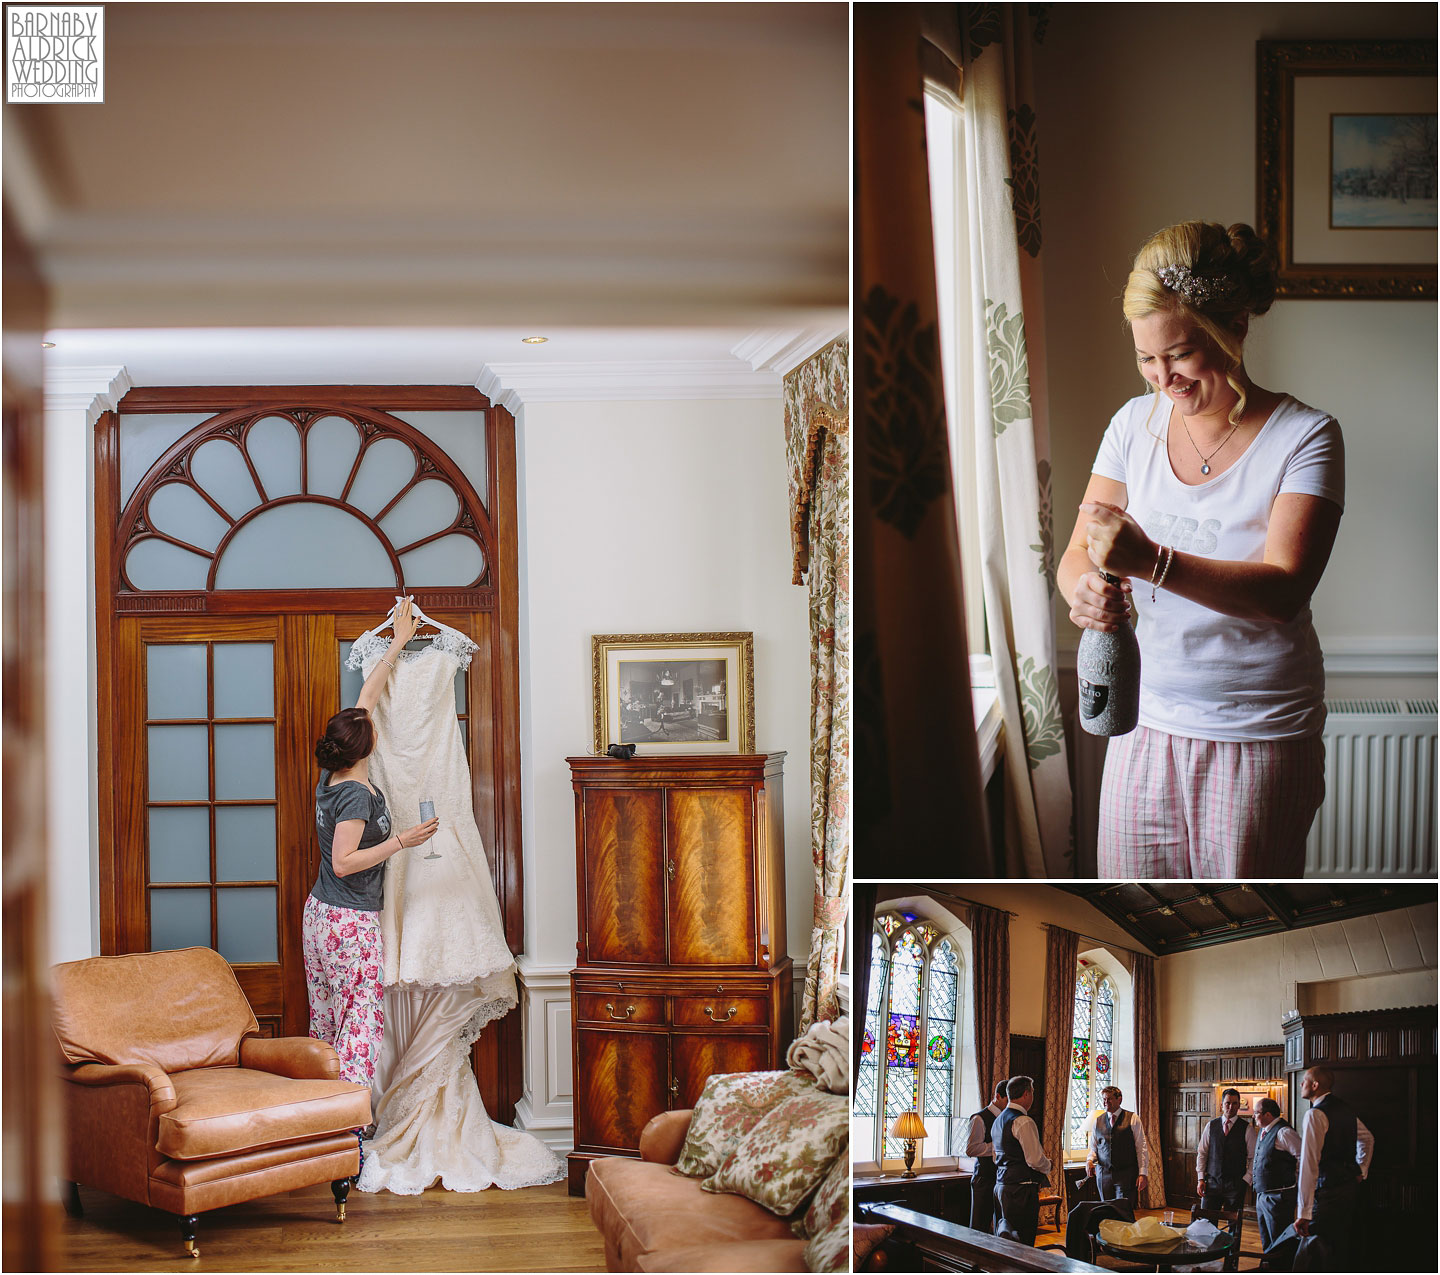 Bridal wedding preparations at Denton Hall near Ilkley in Yorkshire